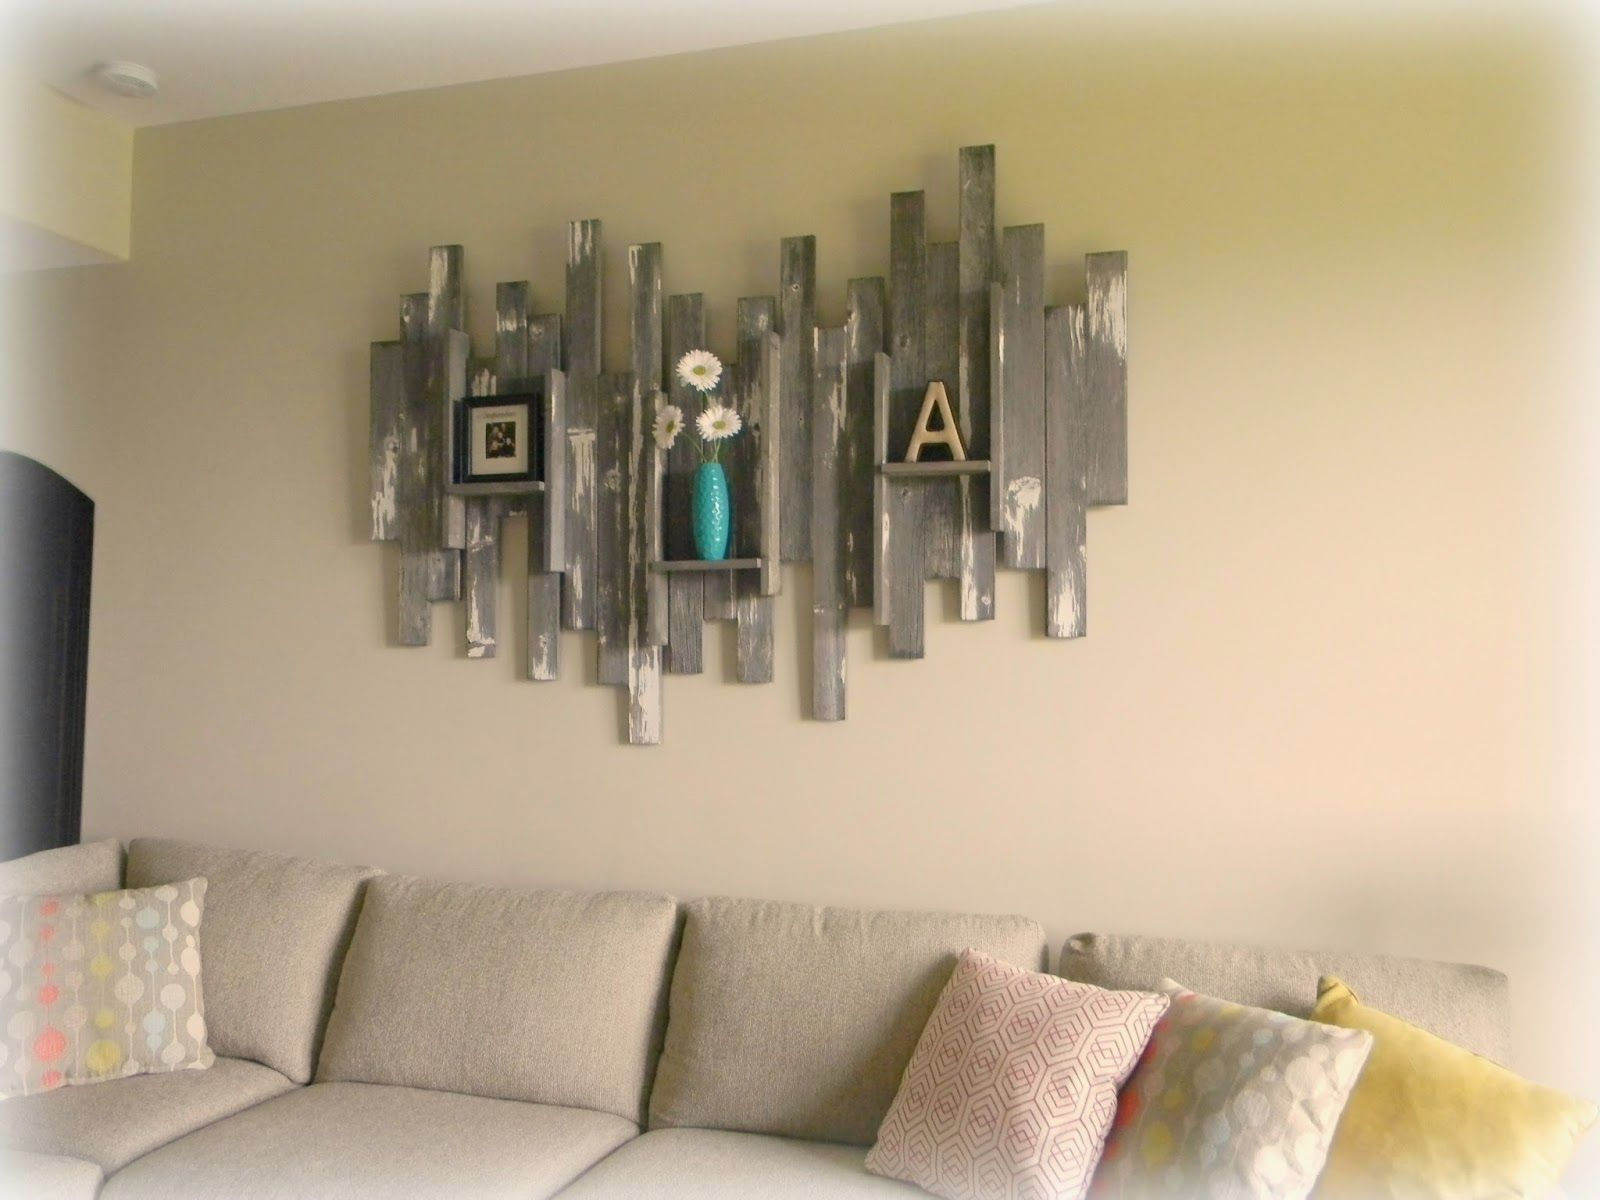 wall decor ideas 2